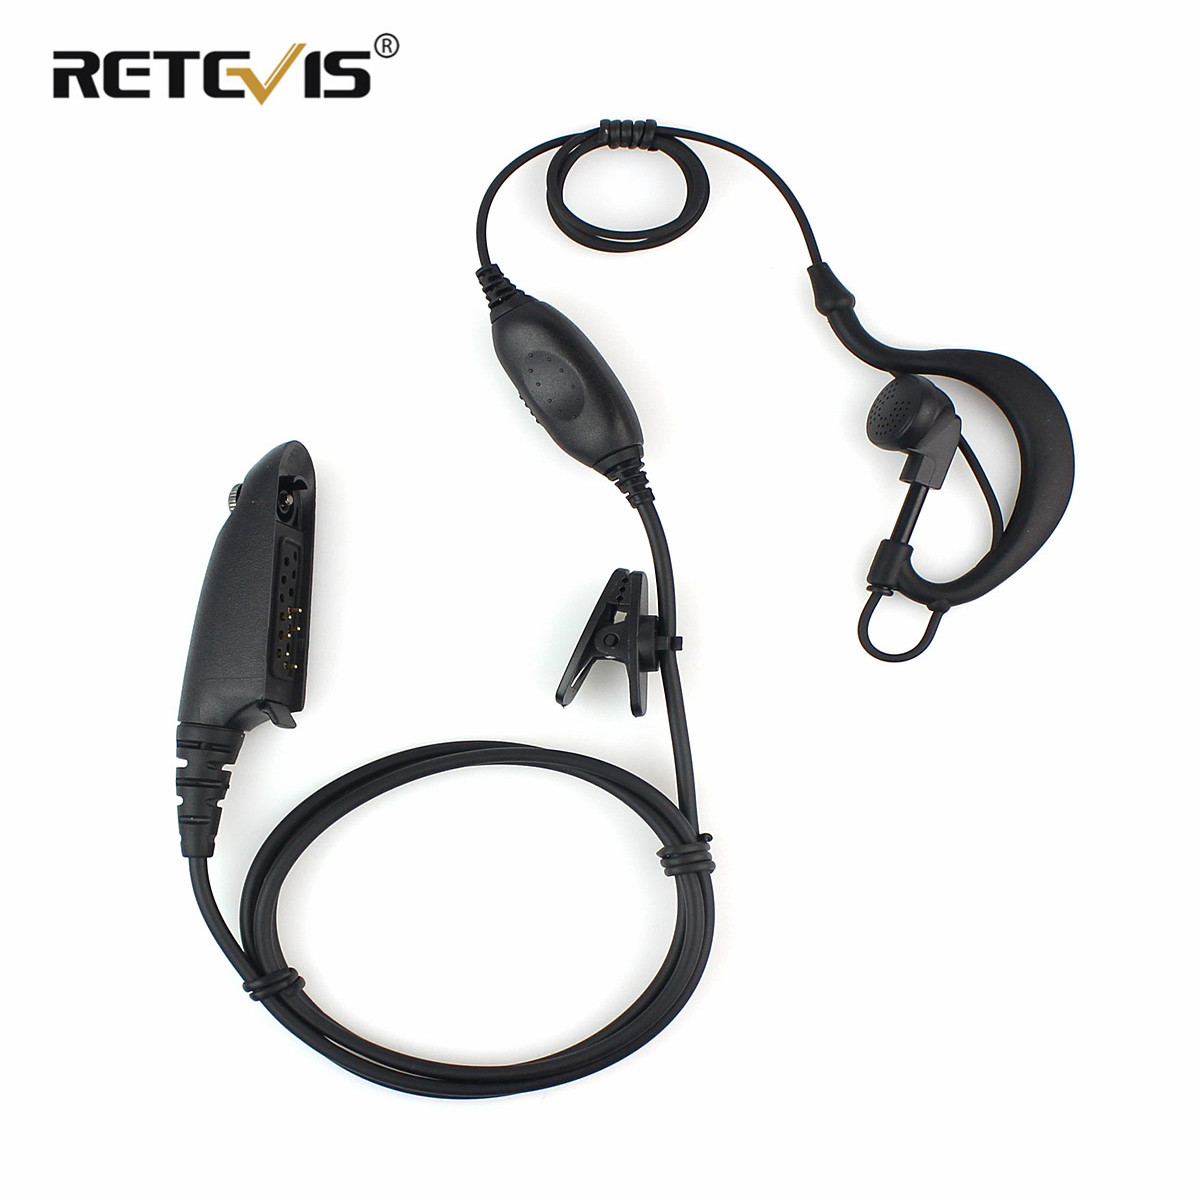 Black PTT VOX MIC Earpiece Walkie Talkie Headset For Motorola Radio HT750 HT1250 GP328 GP329 PRO5150 PRO5350 C0259A